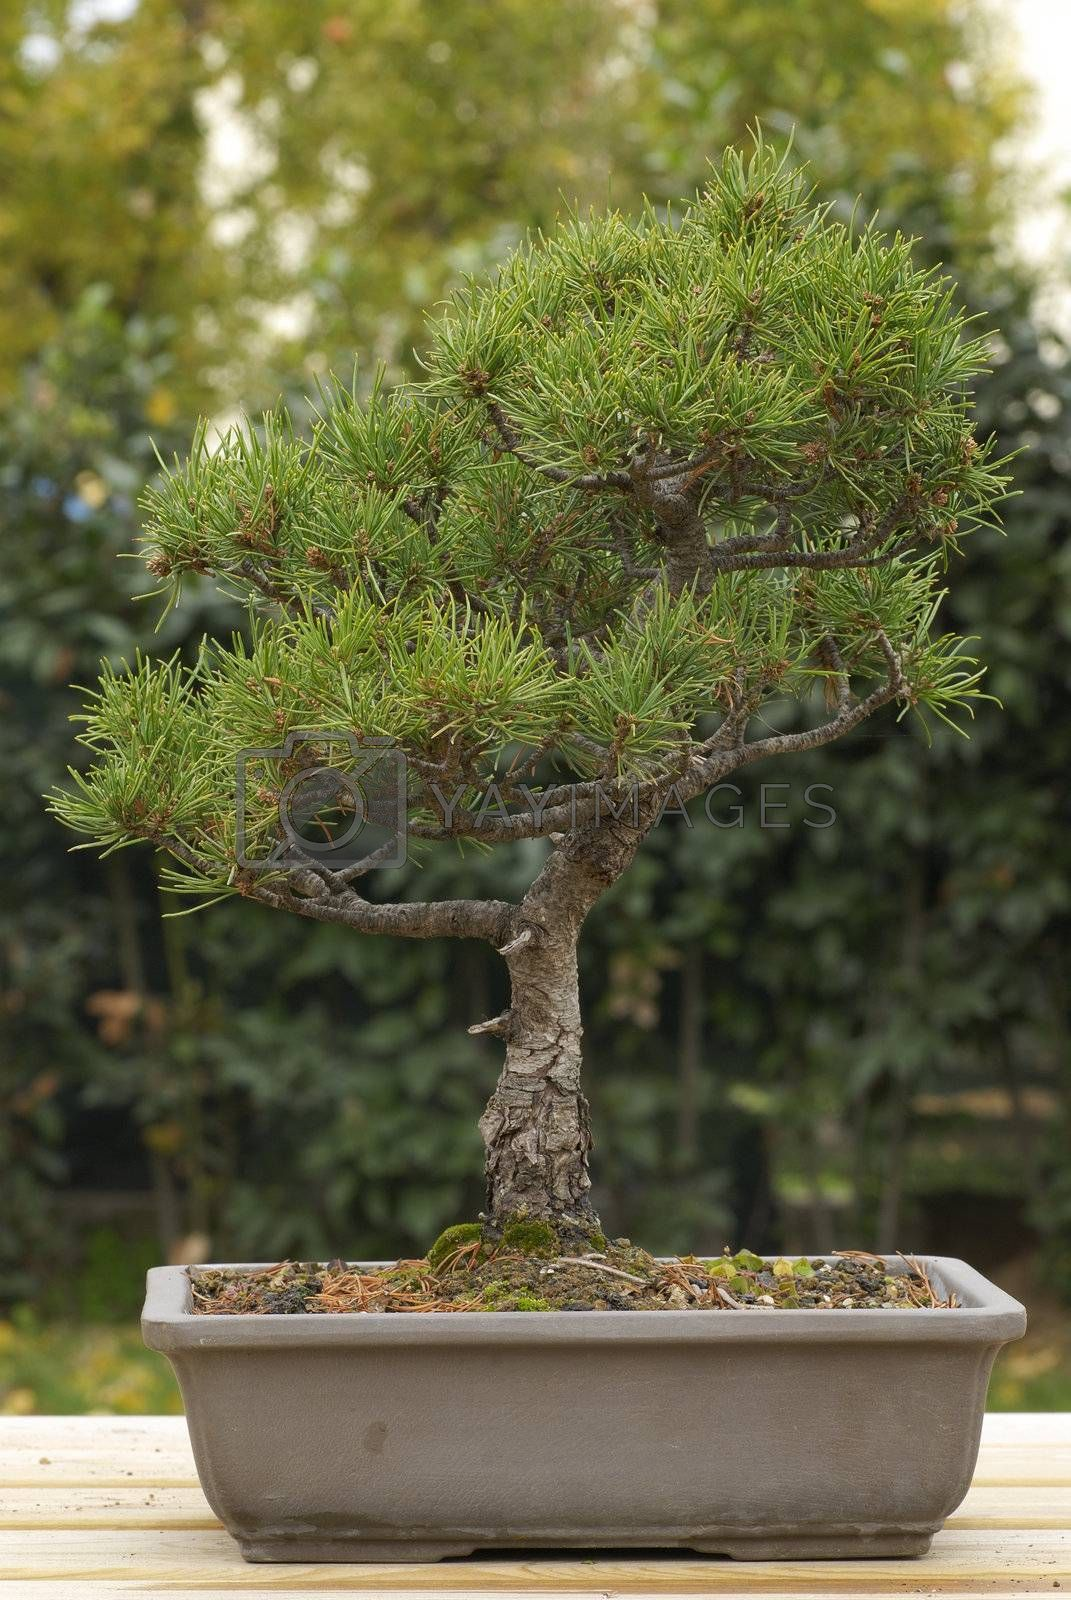 Royalty free image of Pine tree bonsai by AlessandroZocc